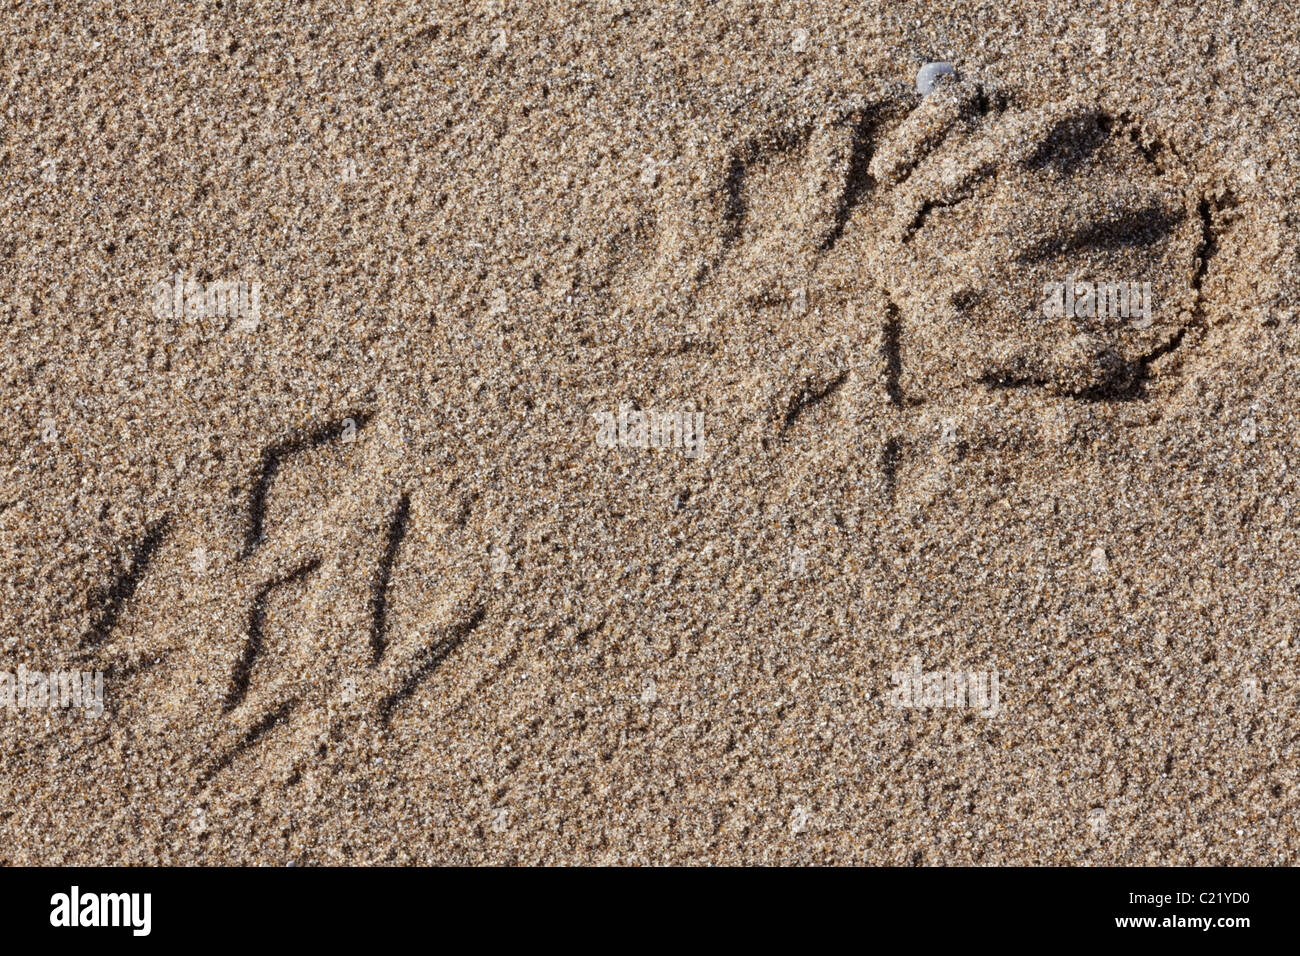 Shoe imprint in the sand on a beach, Wales, United Kingdom - Stock Image